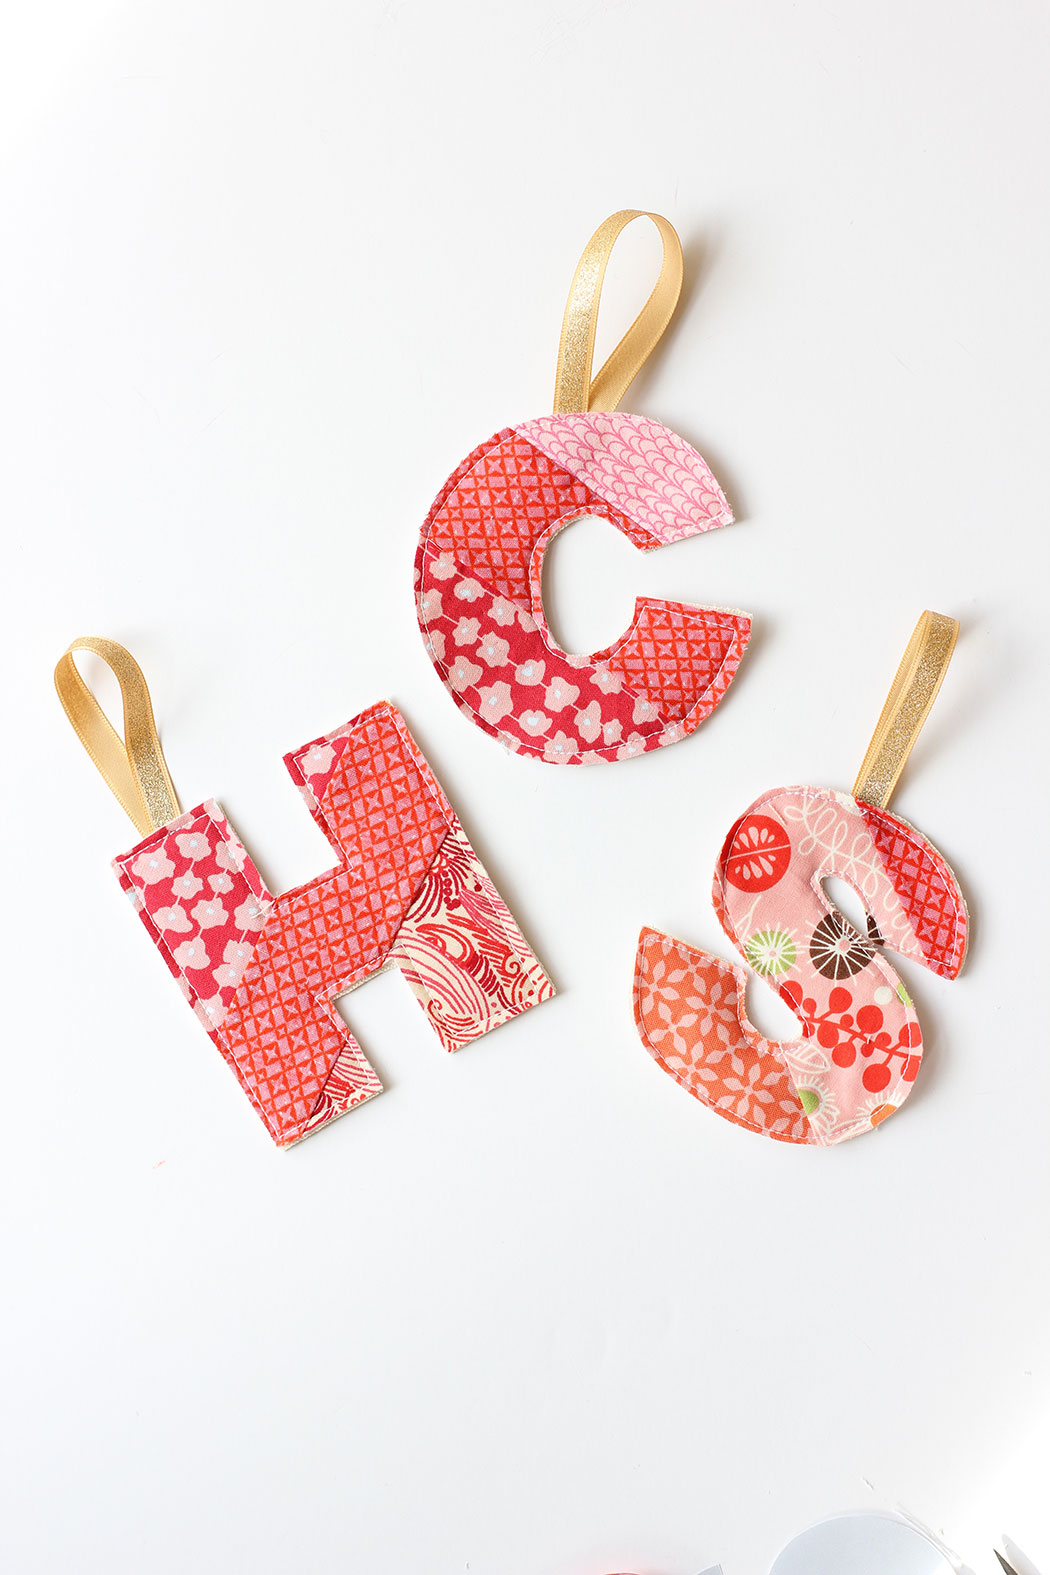 Fabric Monogram Ornaments